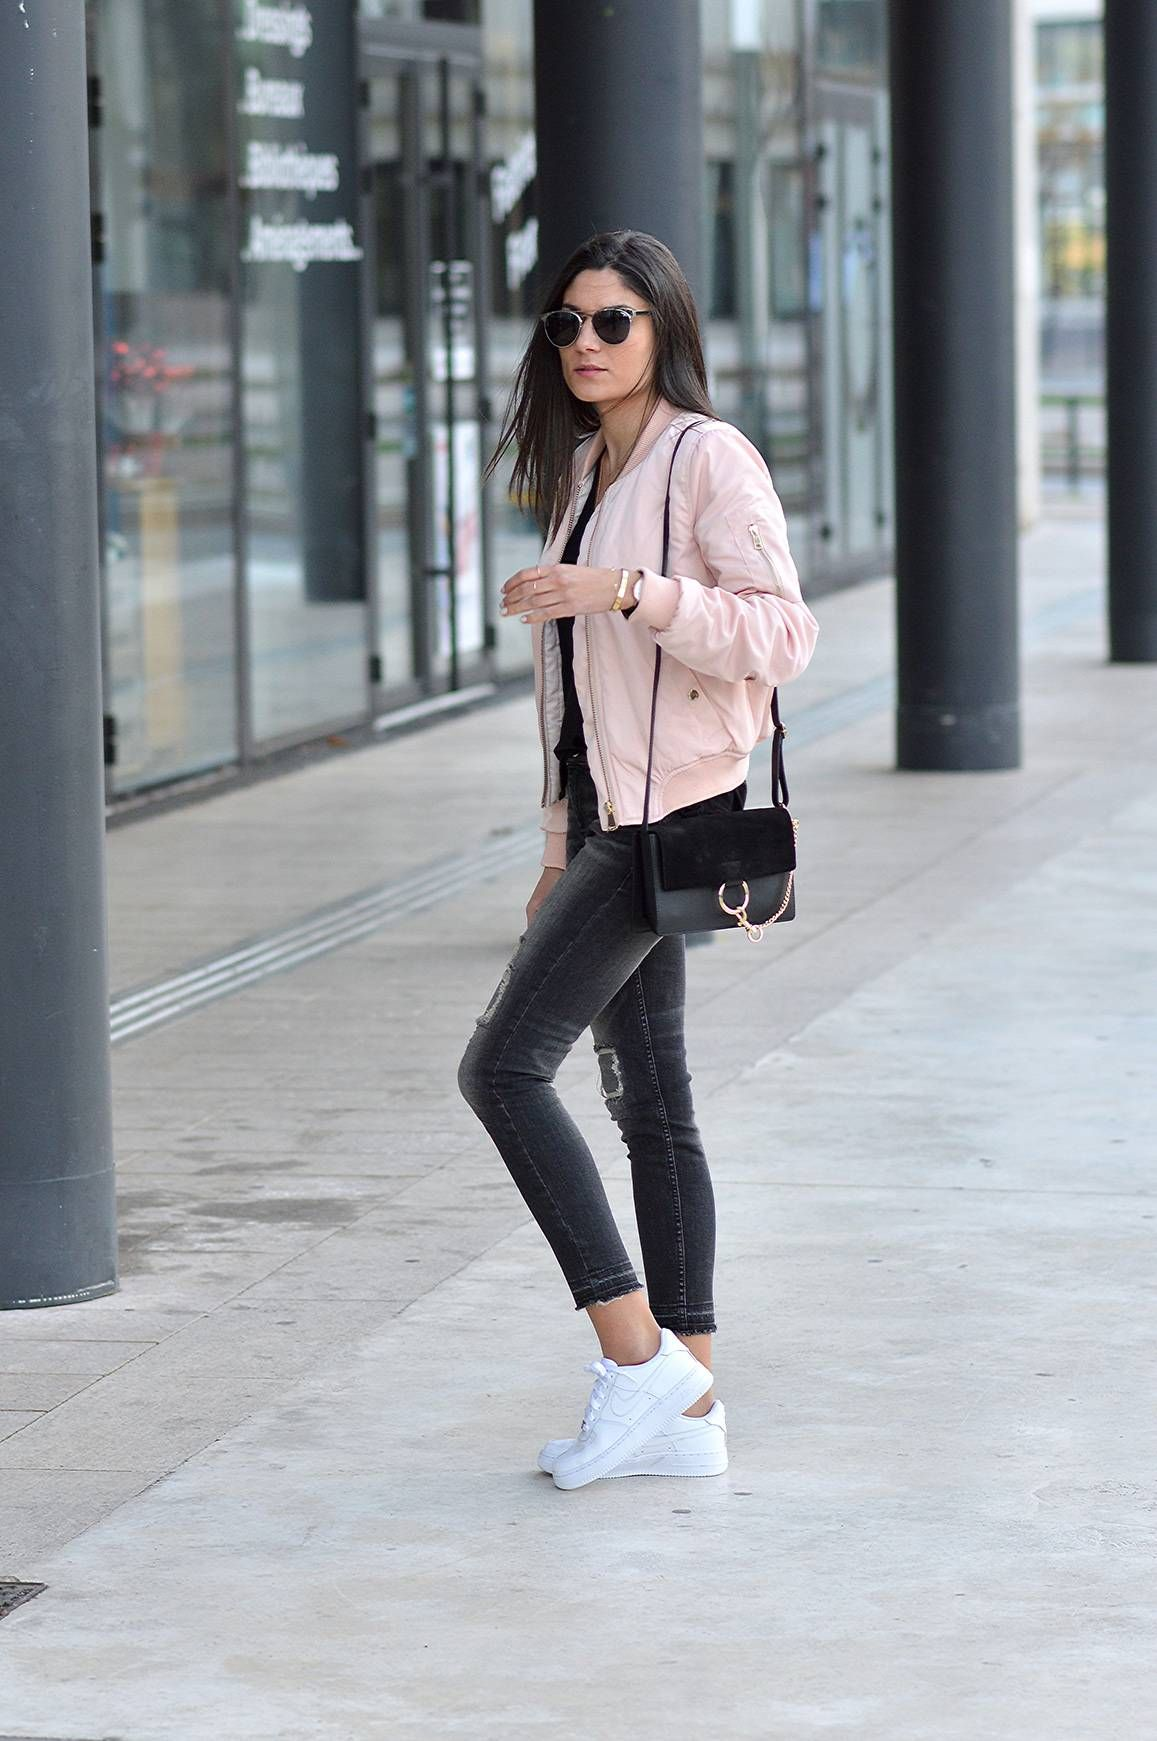 White t shirt fashion tips - Style Tips On How To Wear A Bomber Jacket Bomber Jacket Outfits